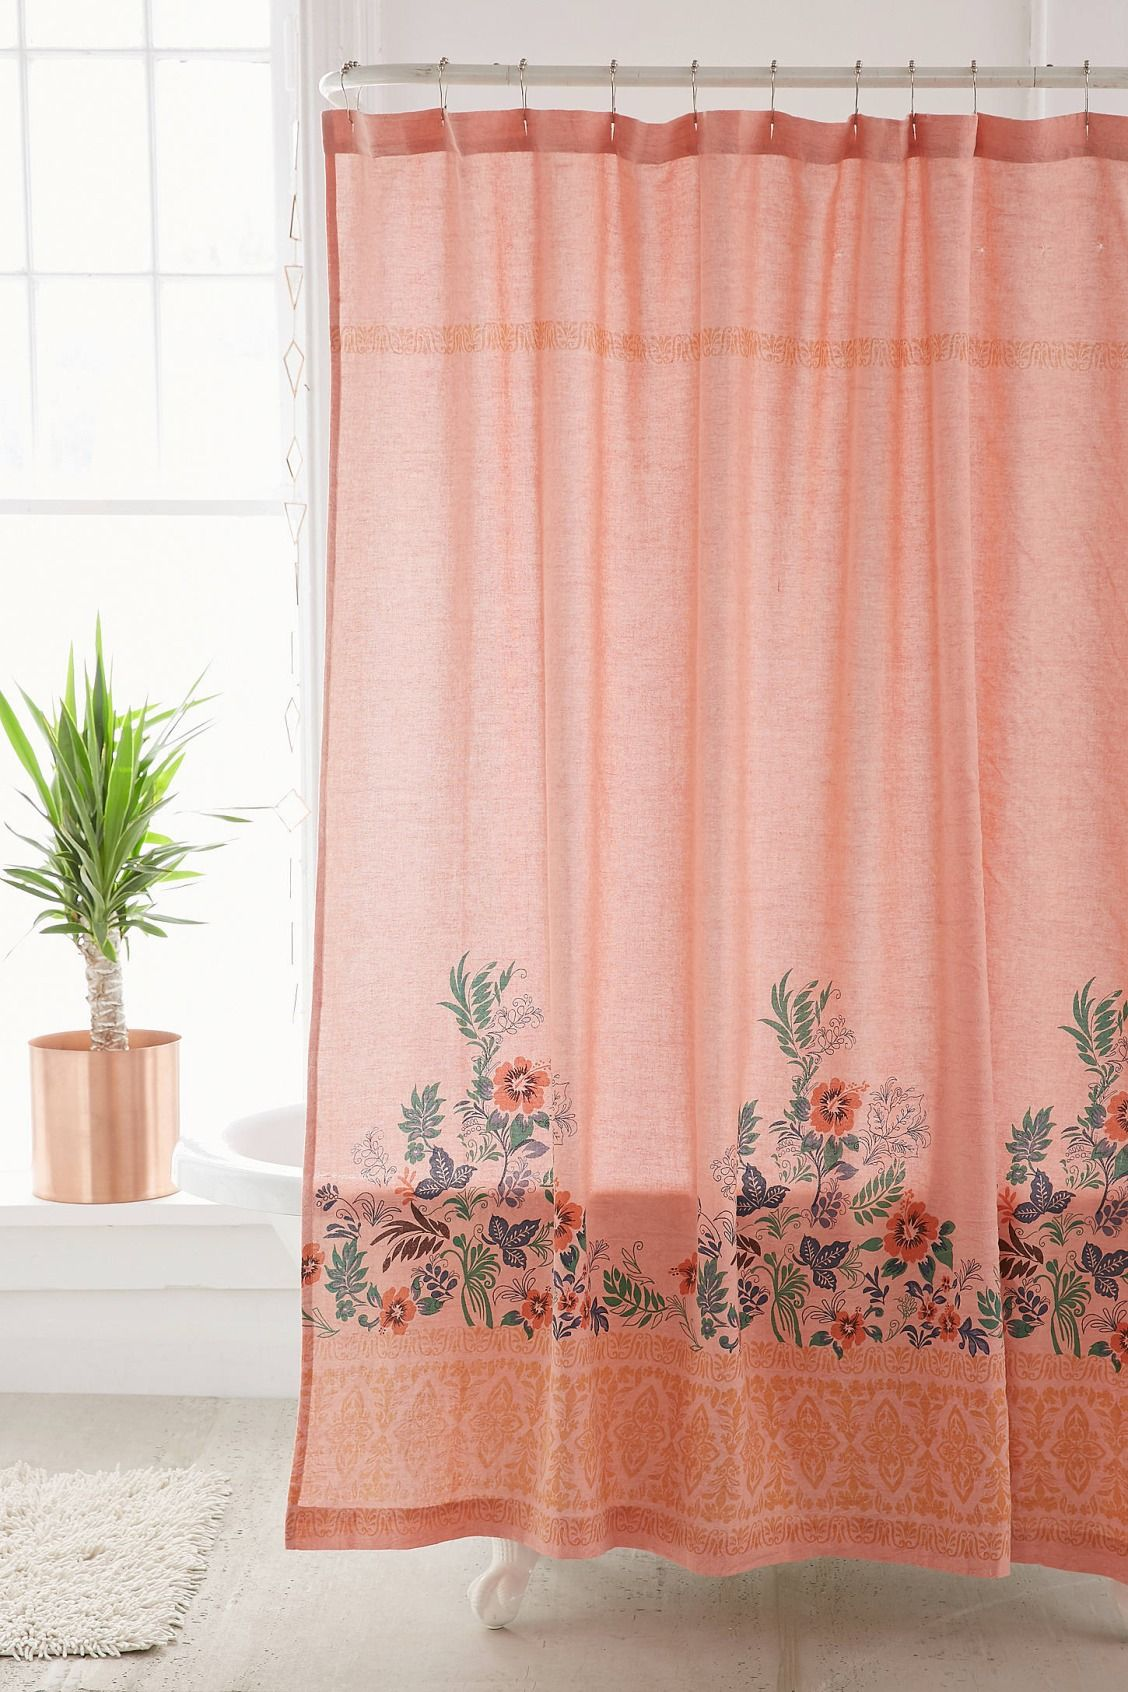 Beachy Floral Shower Curtain | Floral shower curtains, Floral and ...